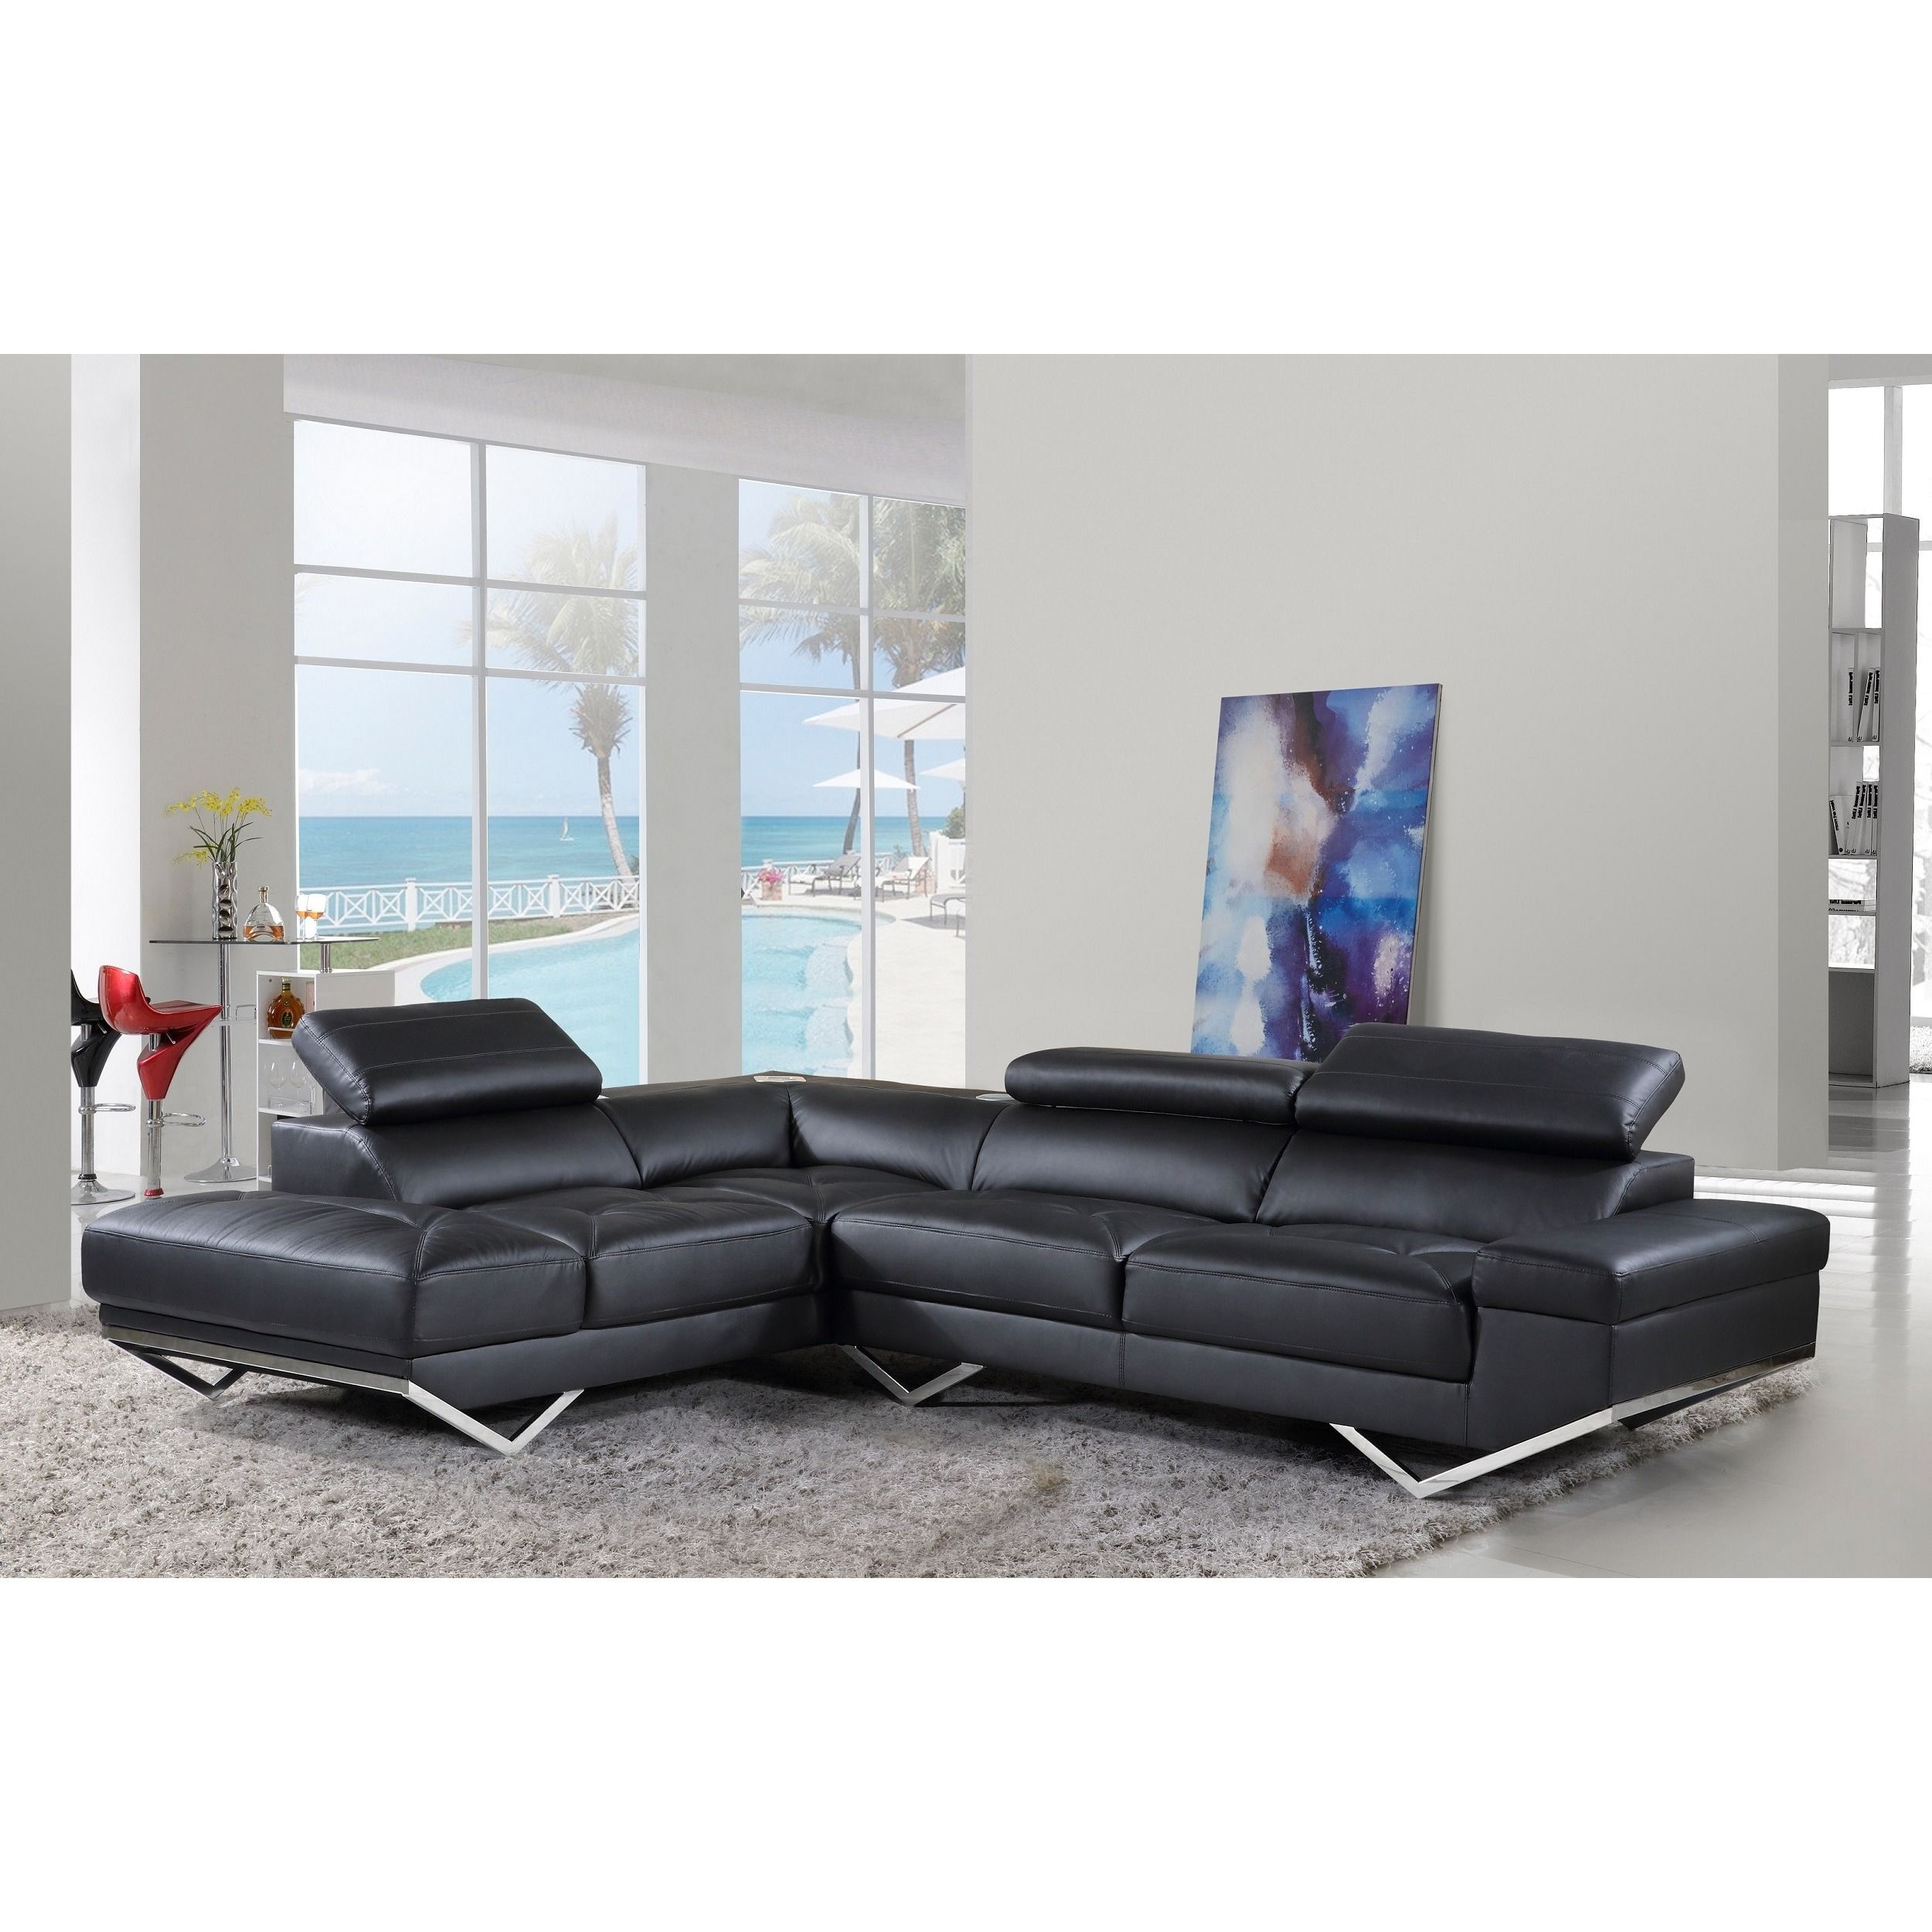 Iliana Leather Contemporary With Wireless Bluetooth - Bluetooth Couch